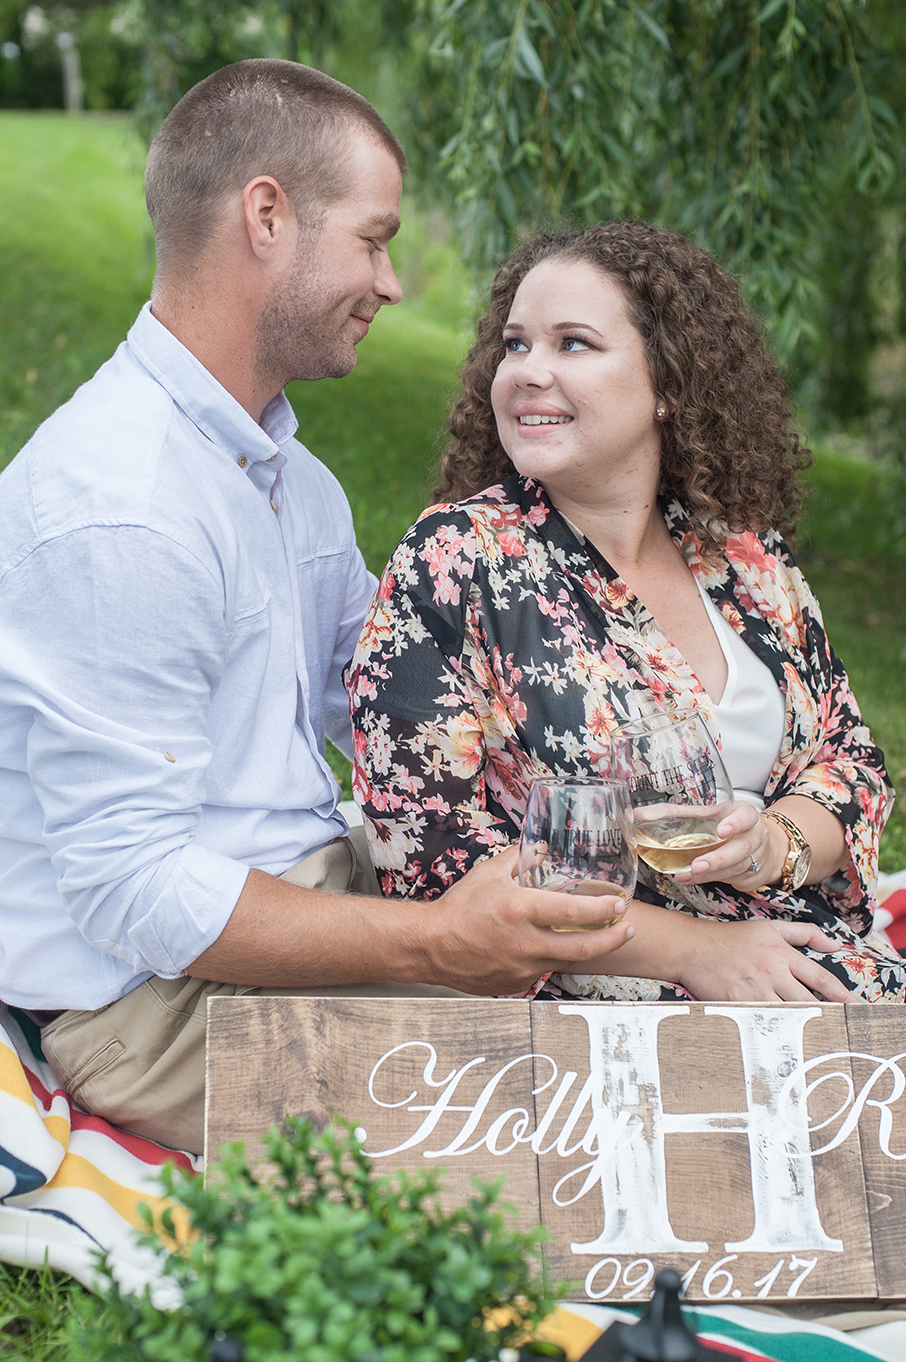 Holly&Rob_EngagementSession-76.jpg